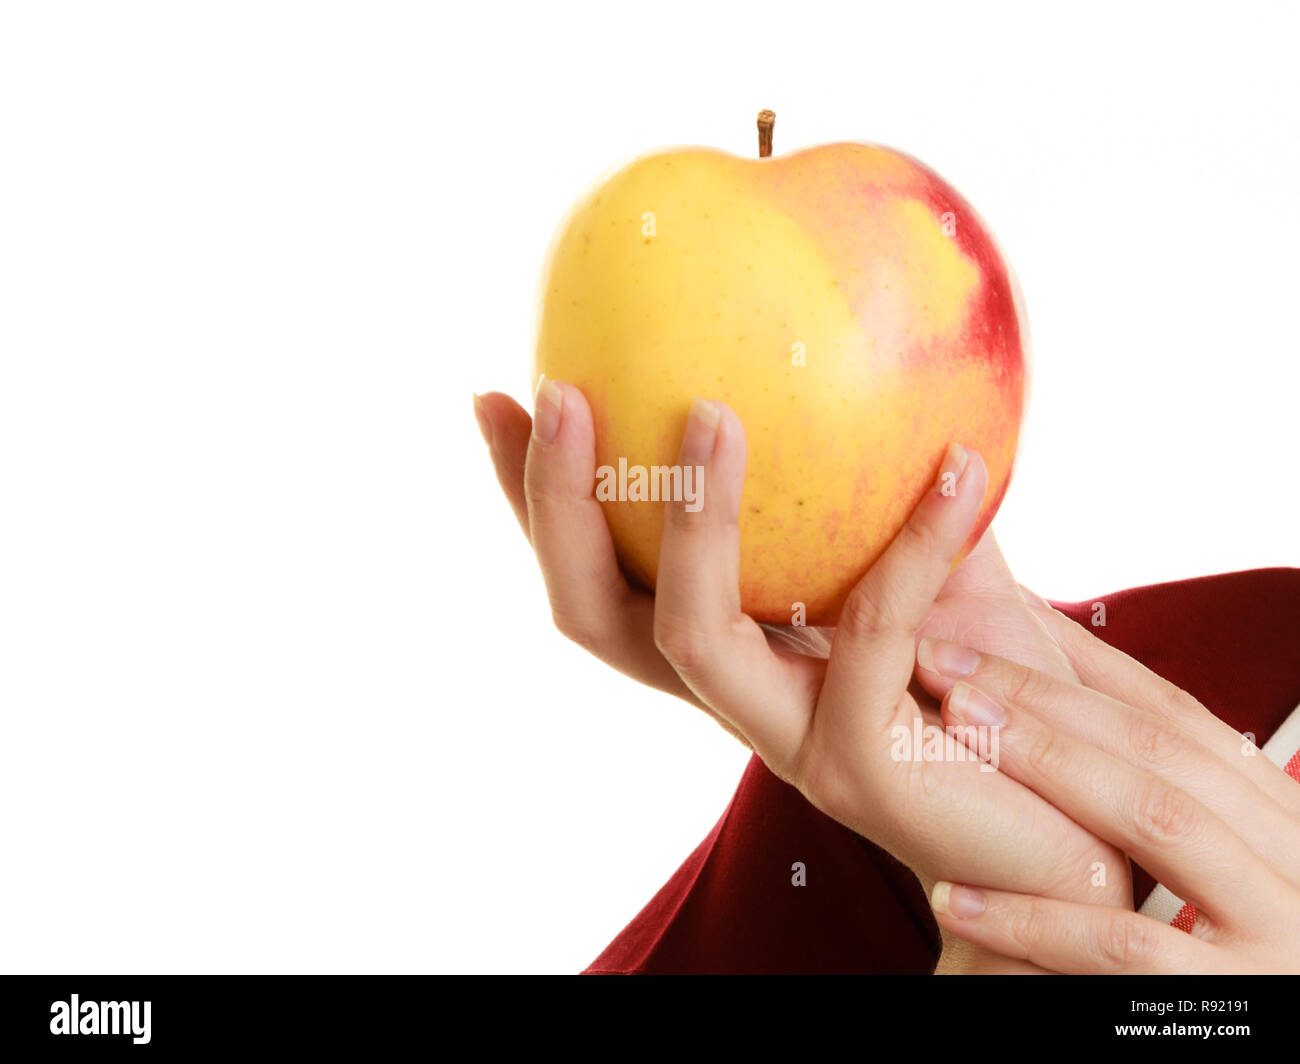 Hands nutrition